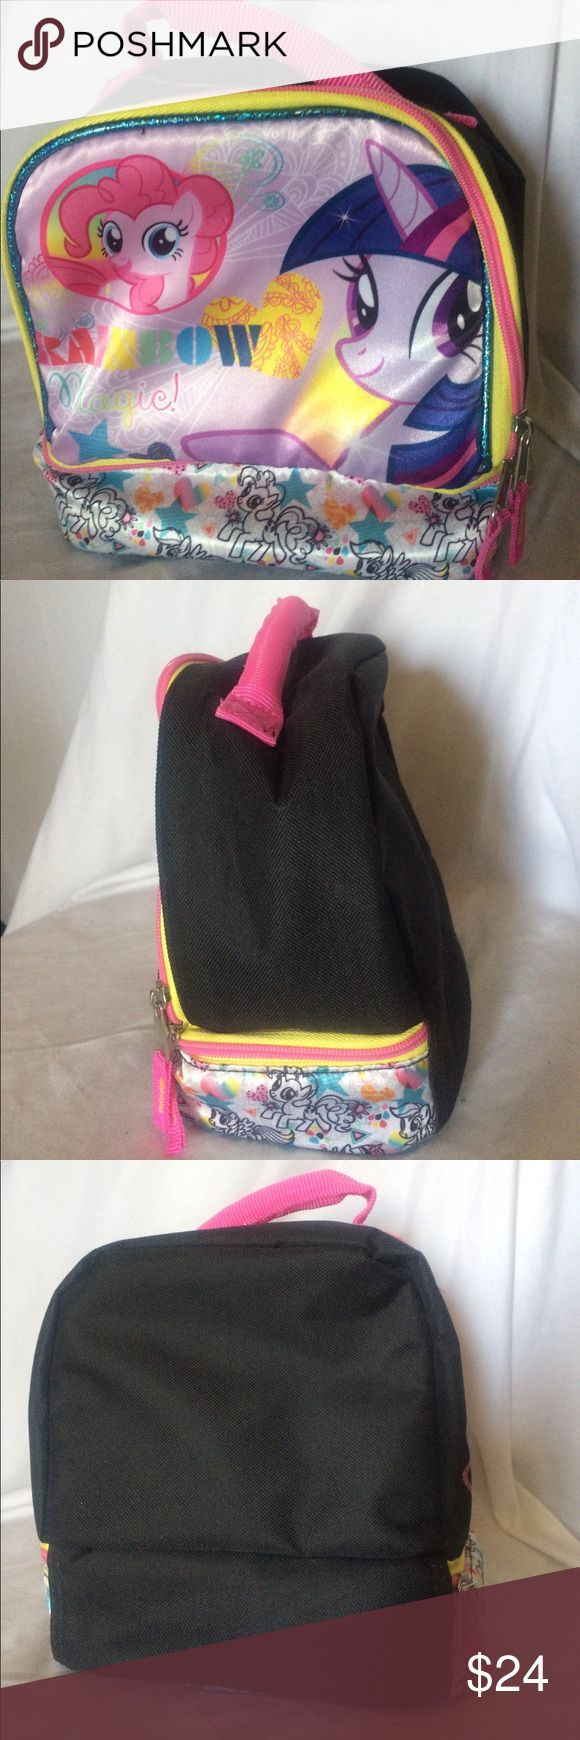 My Little Pony insulted lunchbag Officially licensed My Little Pony backpack style lunch bag keep snacks cool with freezer pack or can be used as a regular bag for kids, punks and ravers. 😉🌈 My Little Pony Accessories Bags